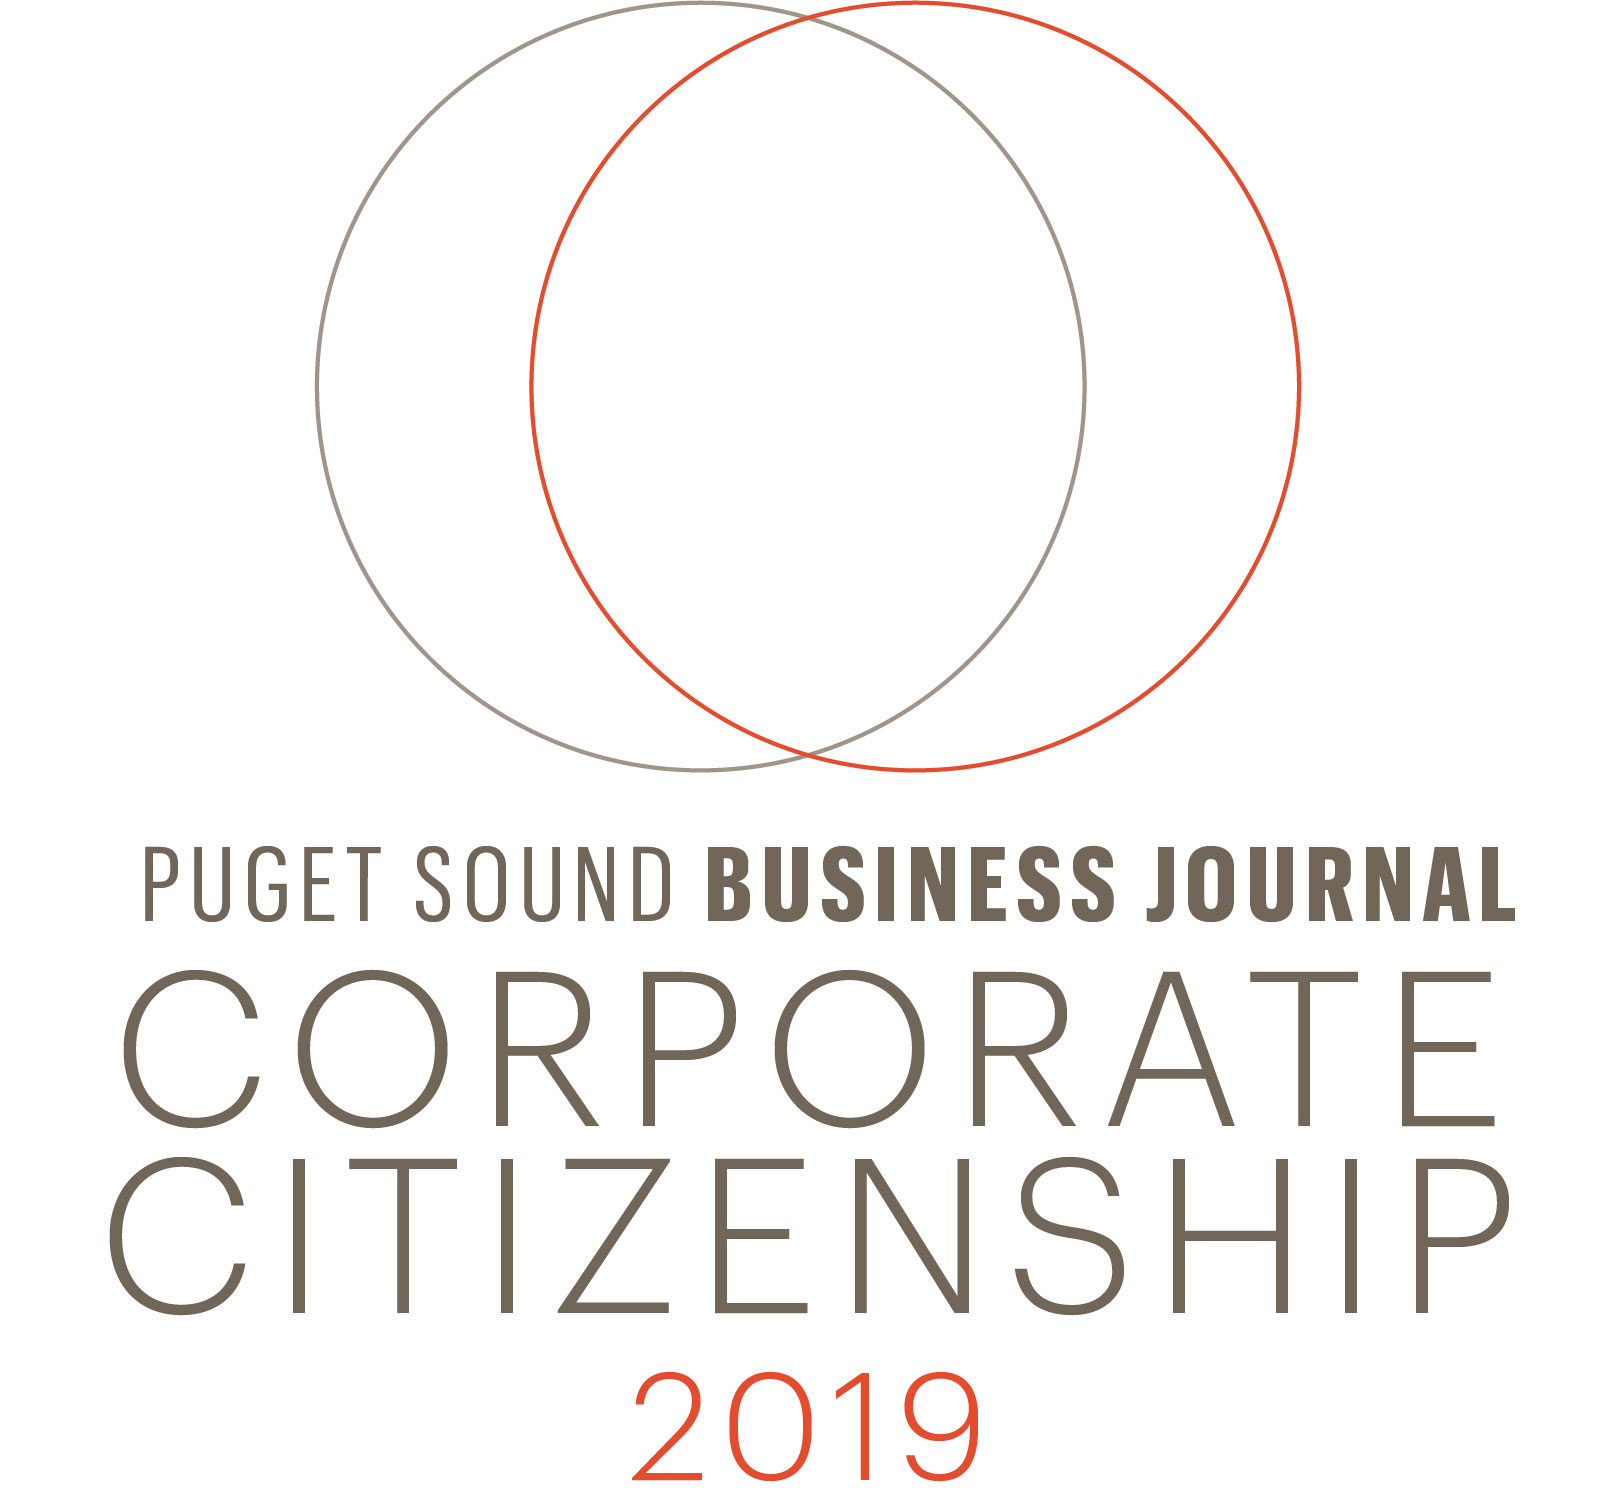 2019 Corporate Citizenship Top Corporate Philanthropist | Puget Sound Business Journal